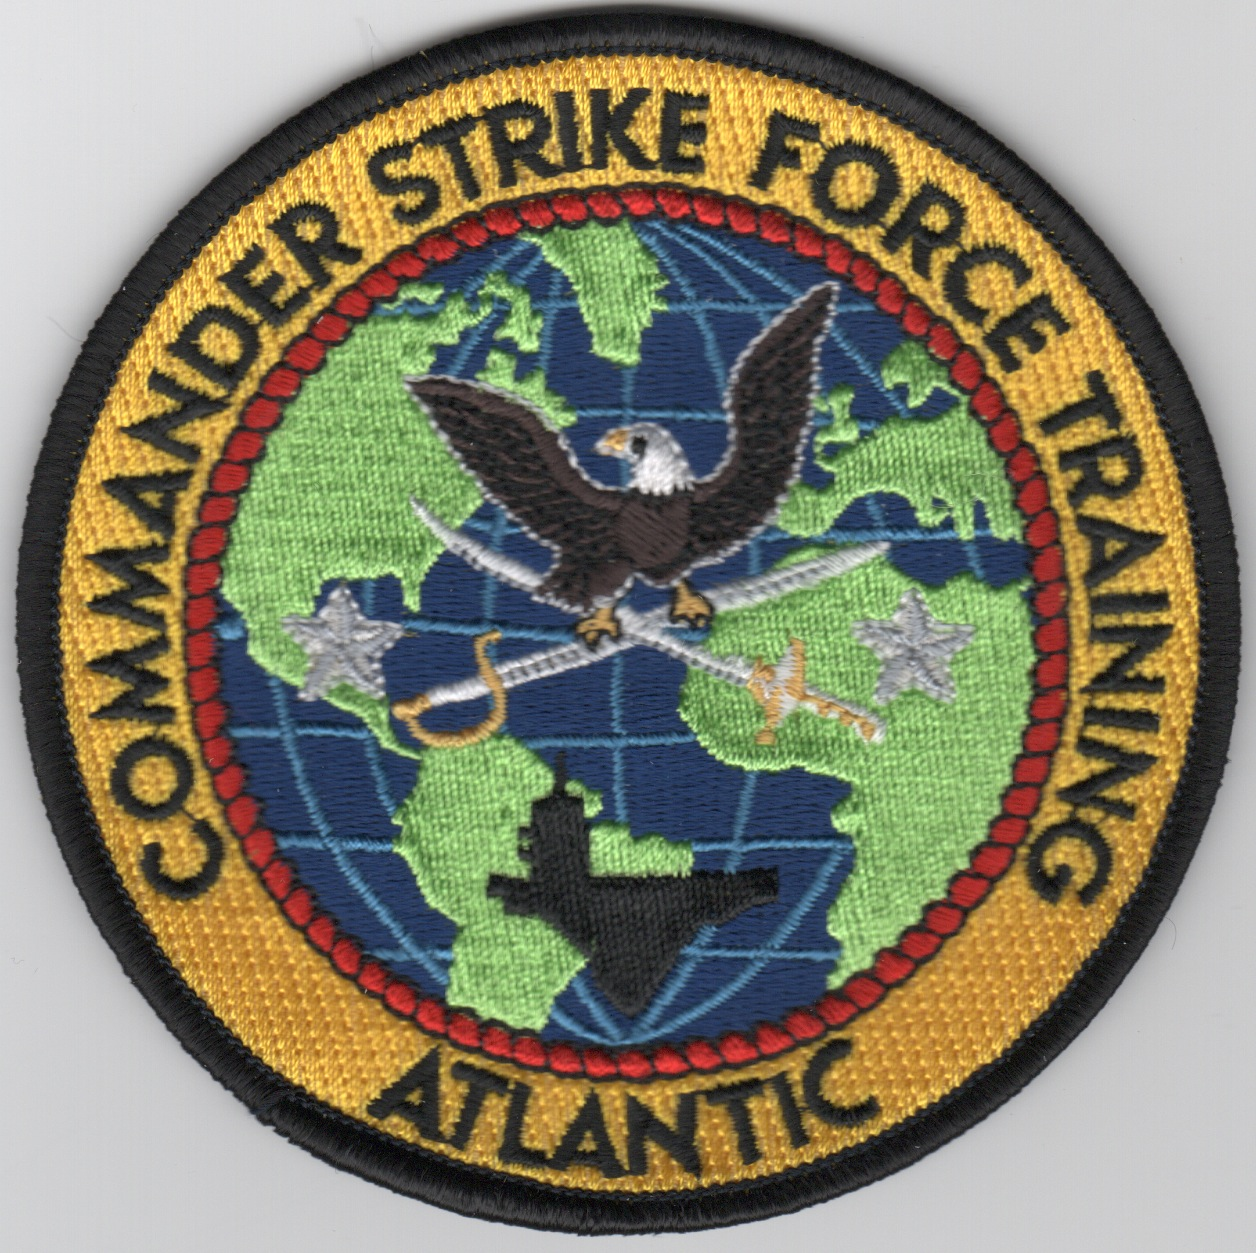 Commander, Strike Force Training-Atlantic